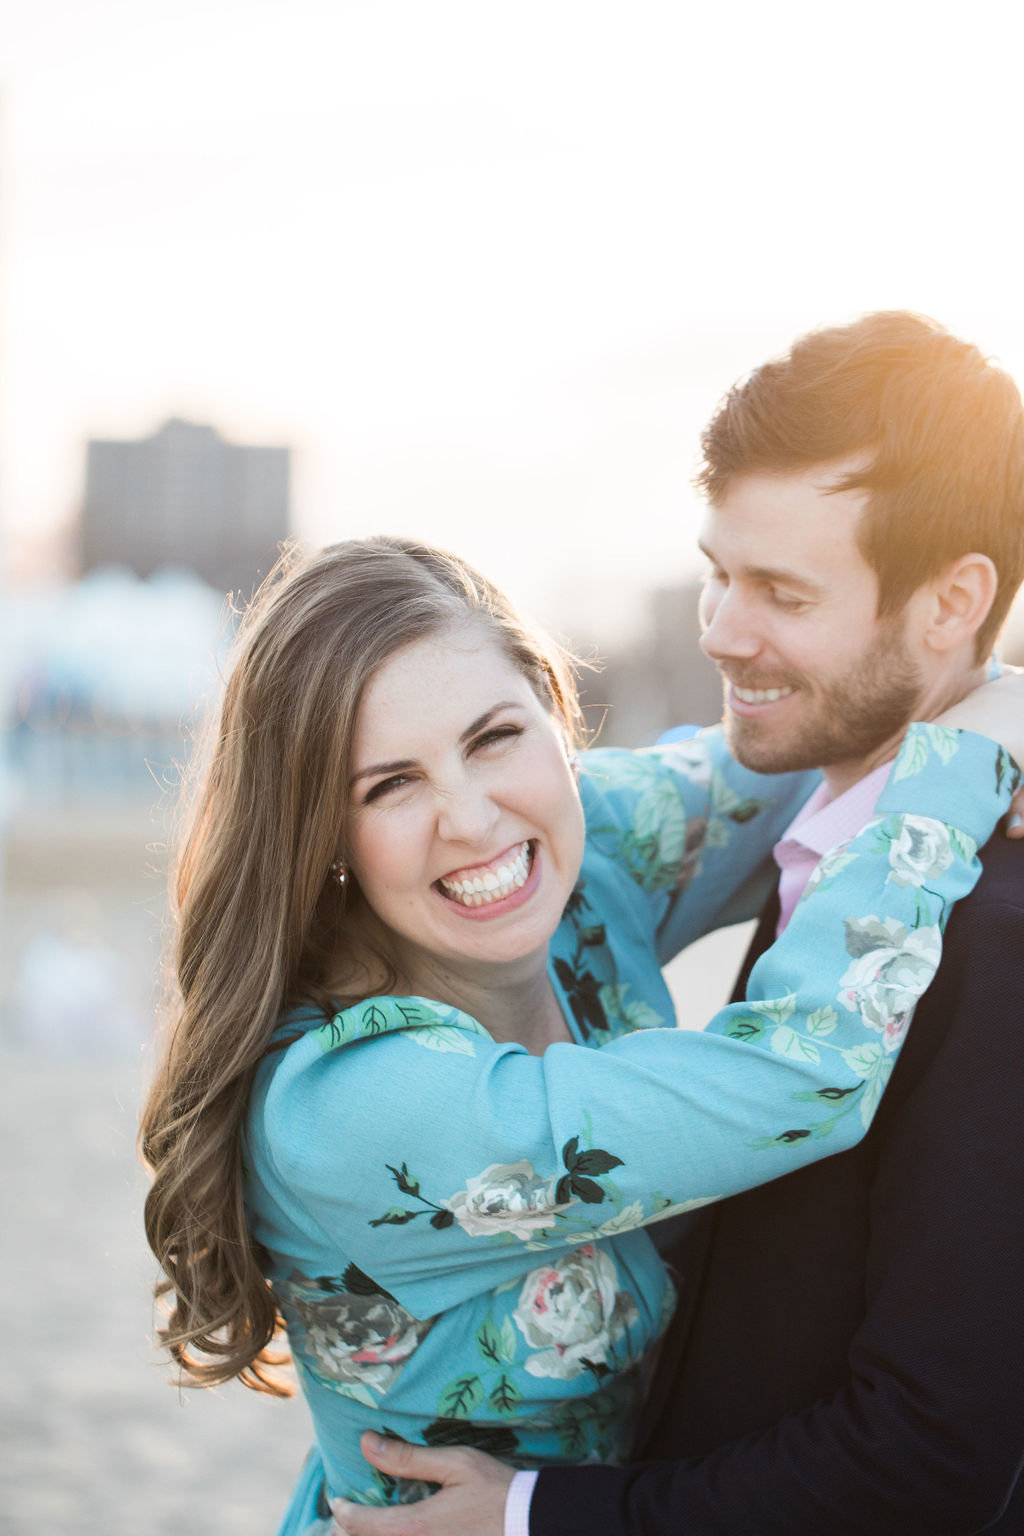 Bride with arms around groom in engagement portrait